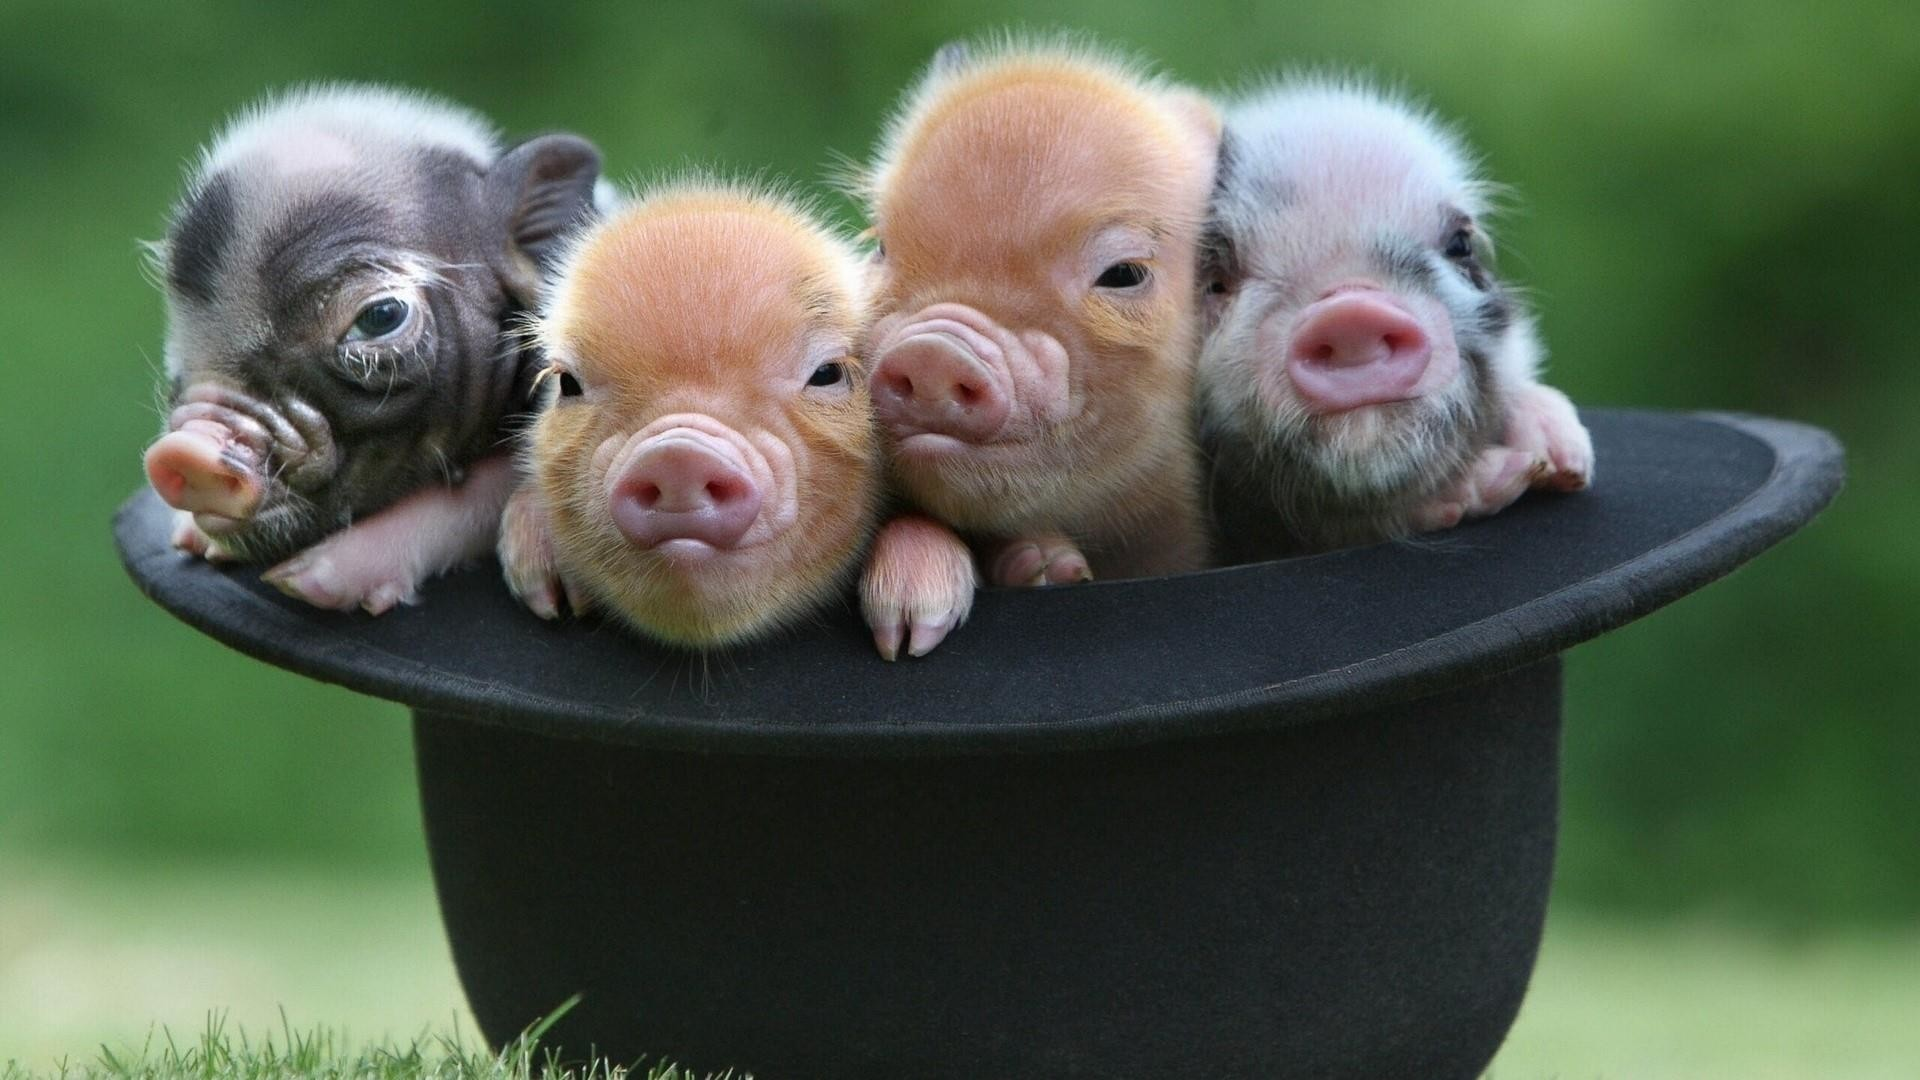 Res: 1920x1080, Baby Pigs In The Hat Wallpaper | Wallpaper Studio 10 | Tens of thousands HD  and UltraHD wallpapers for Android, Windows and Xbox